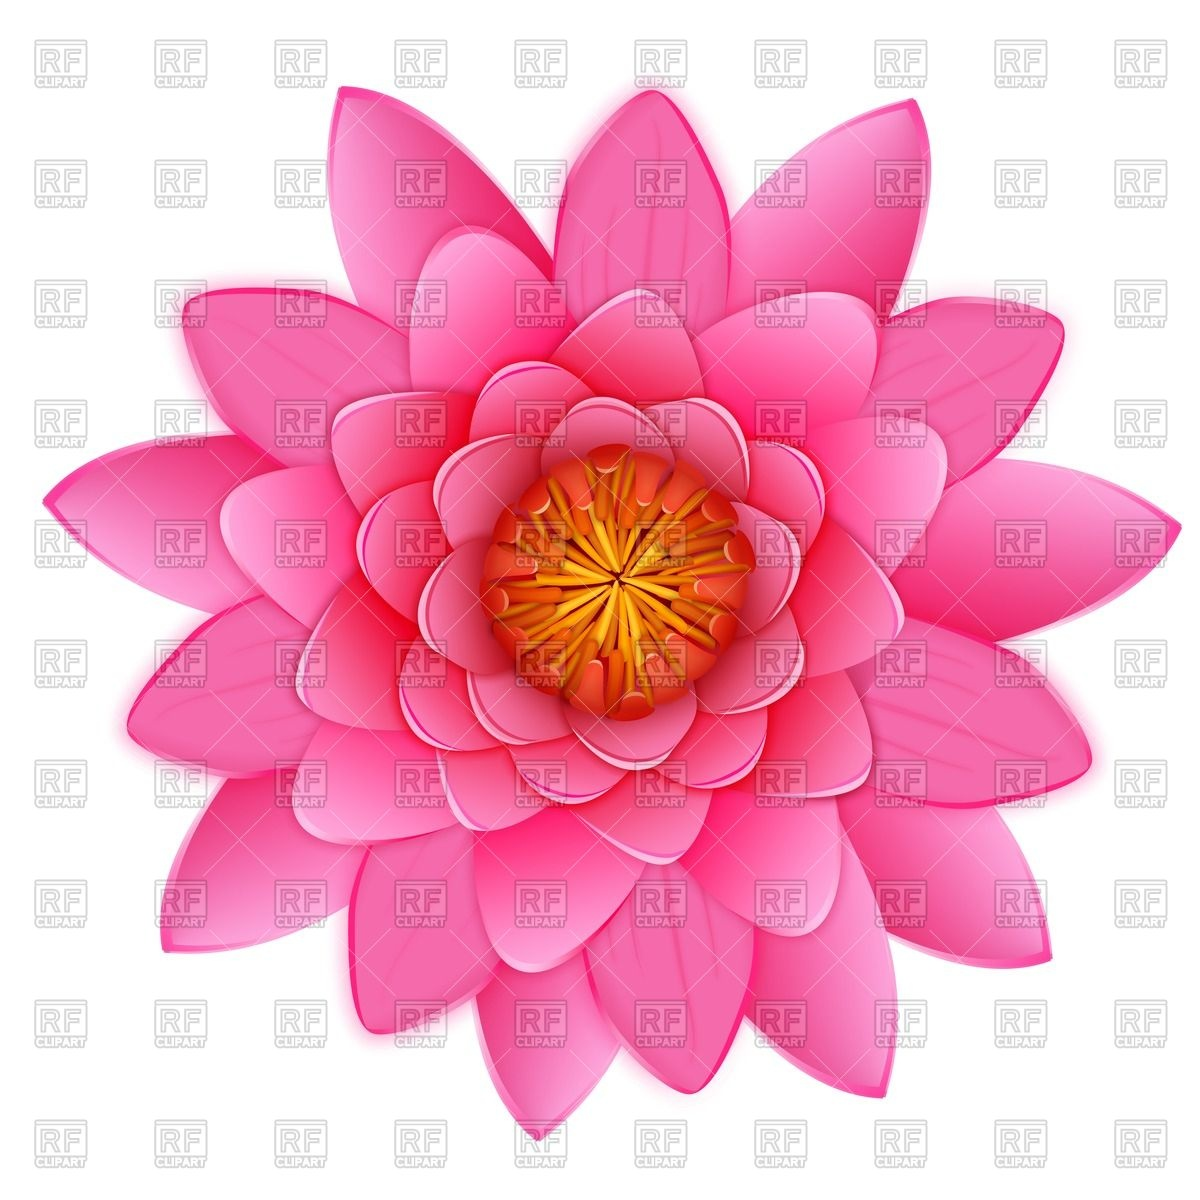 Flowers Images Free | Free download best Flowers Images Free